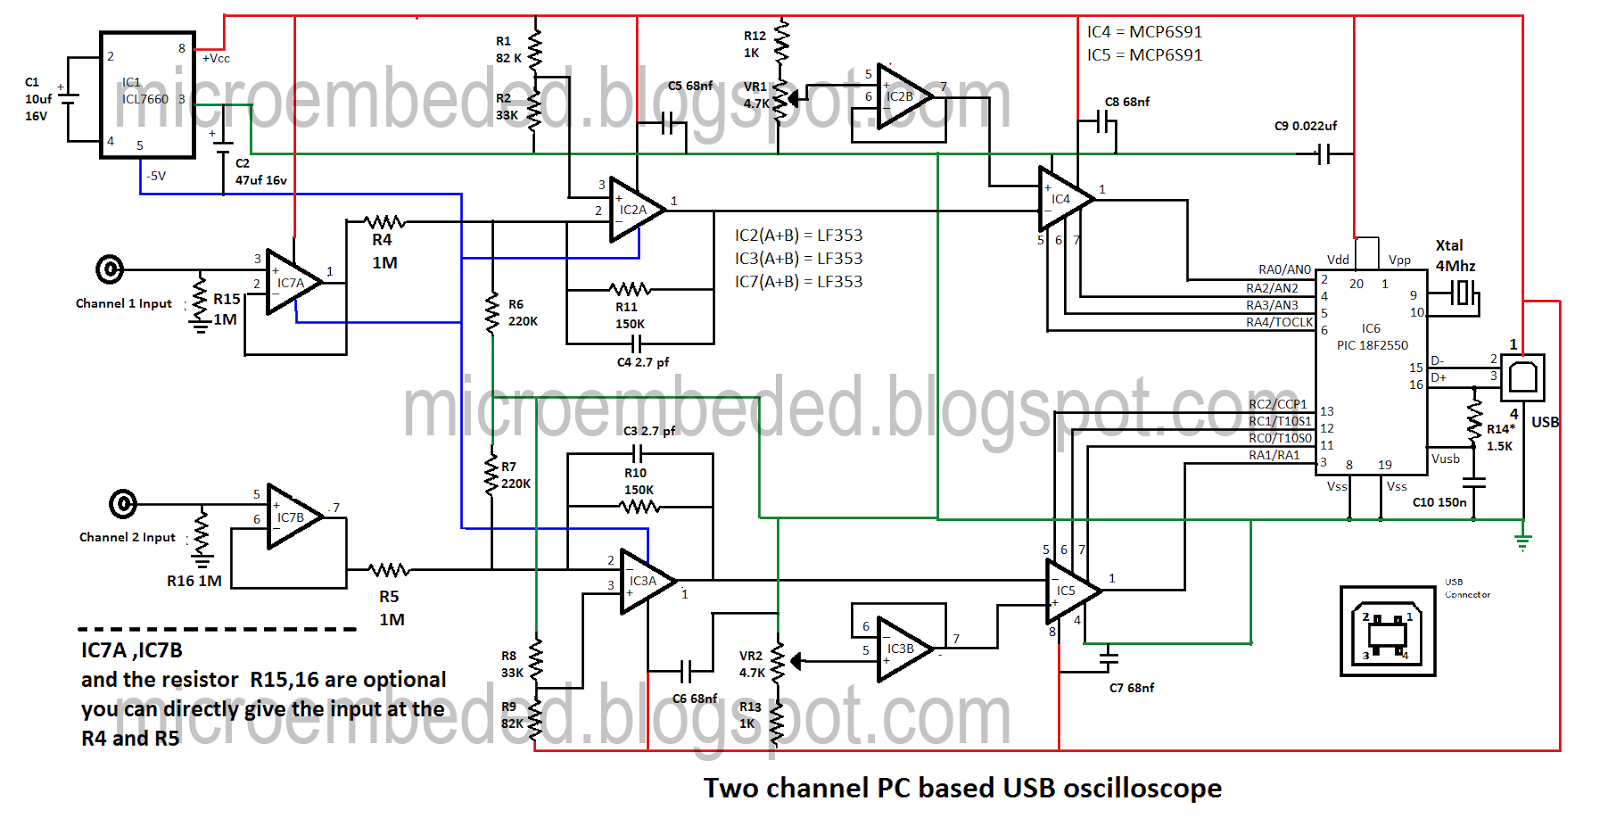 hight resolution of embedded engineering two channel pc based oscilloscope usbusb oscilloscope schematic 6